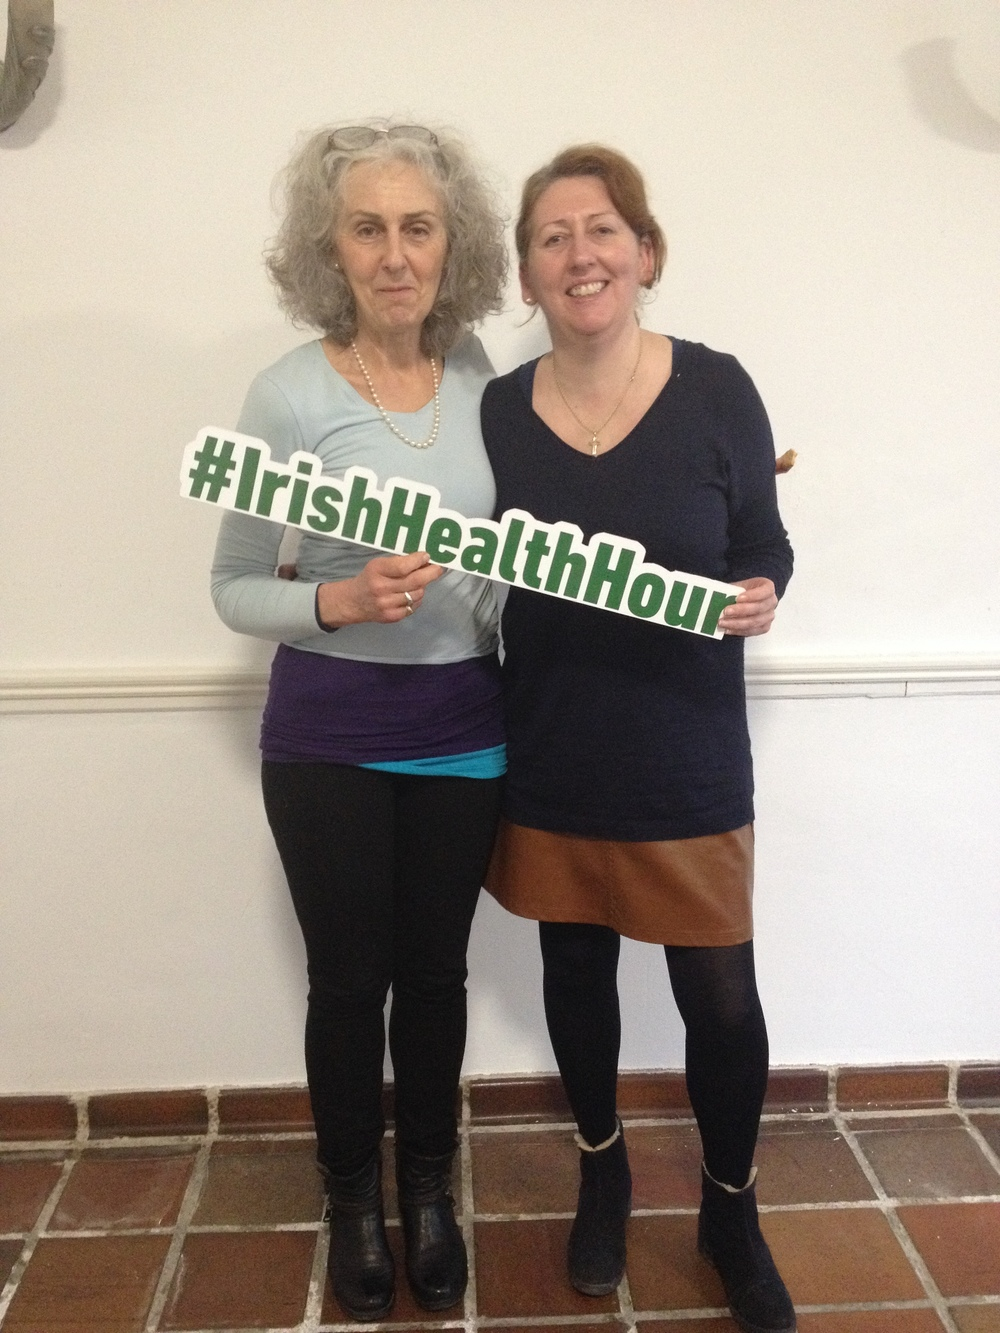 IrishHealthHour meets Buddy Bench Ireland in Kilkenny